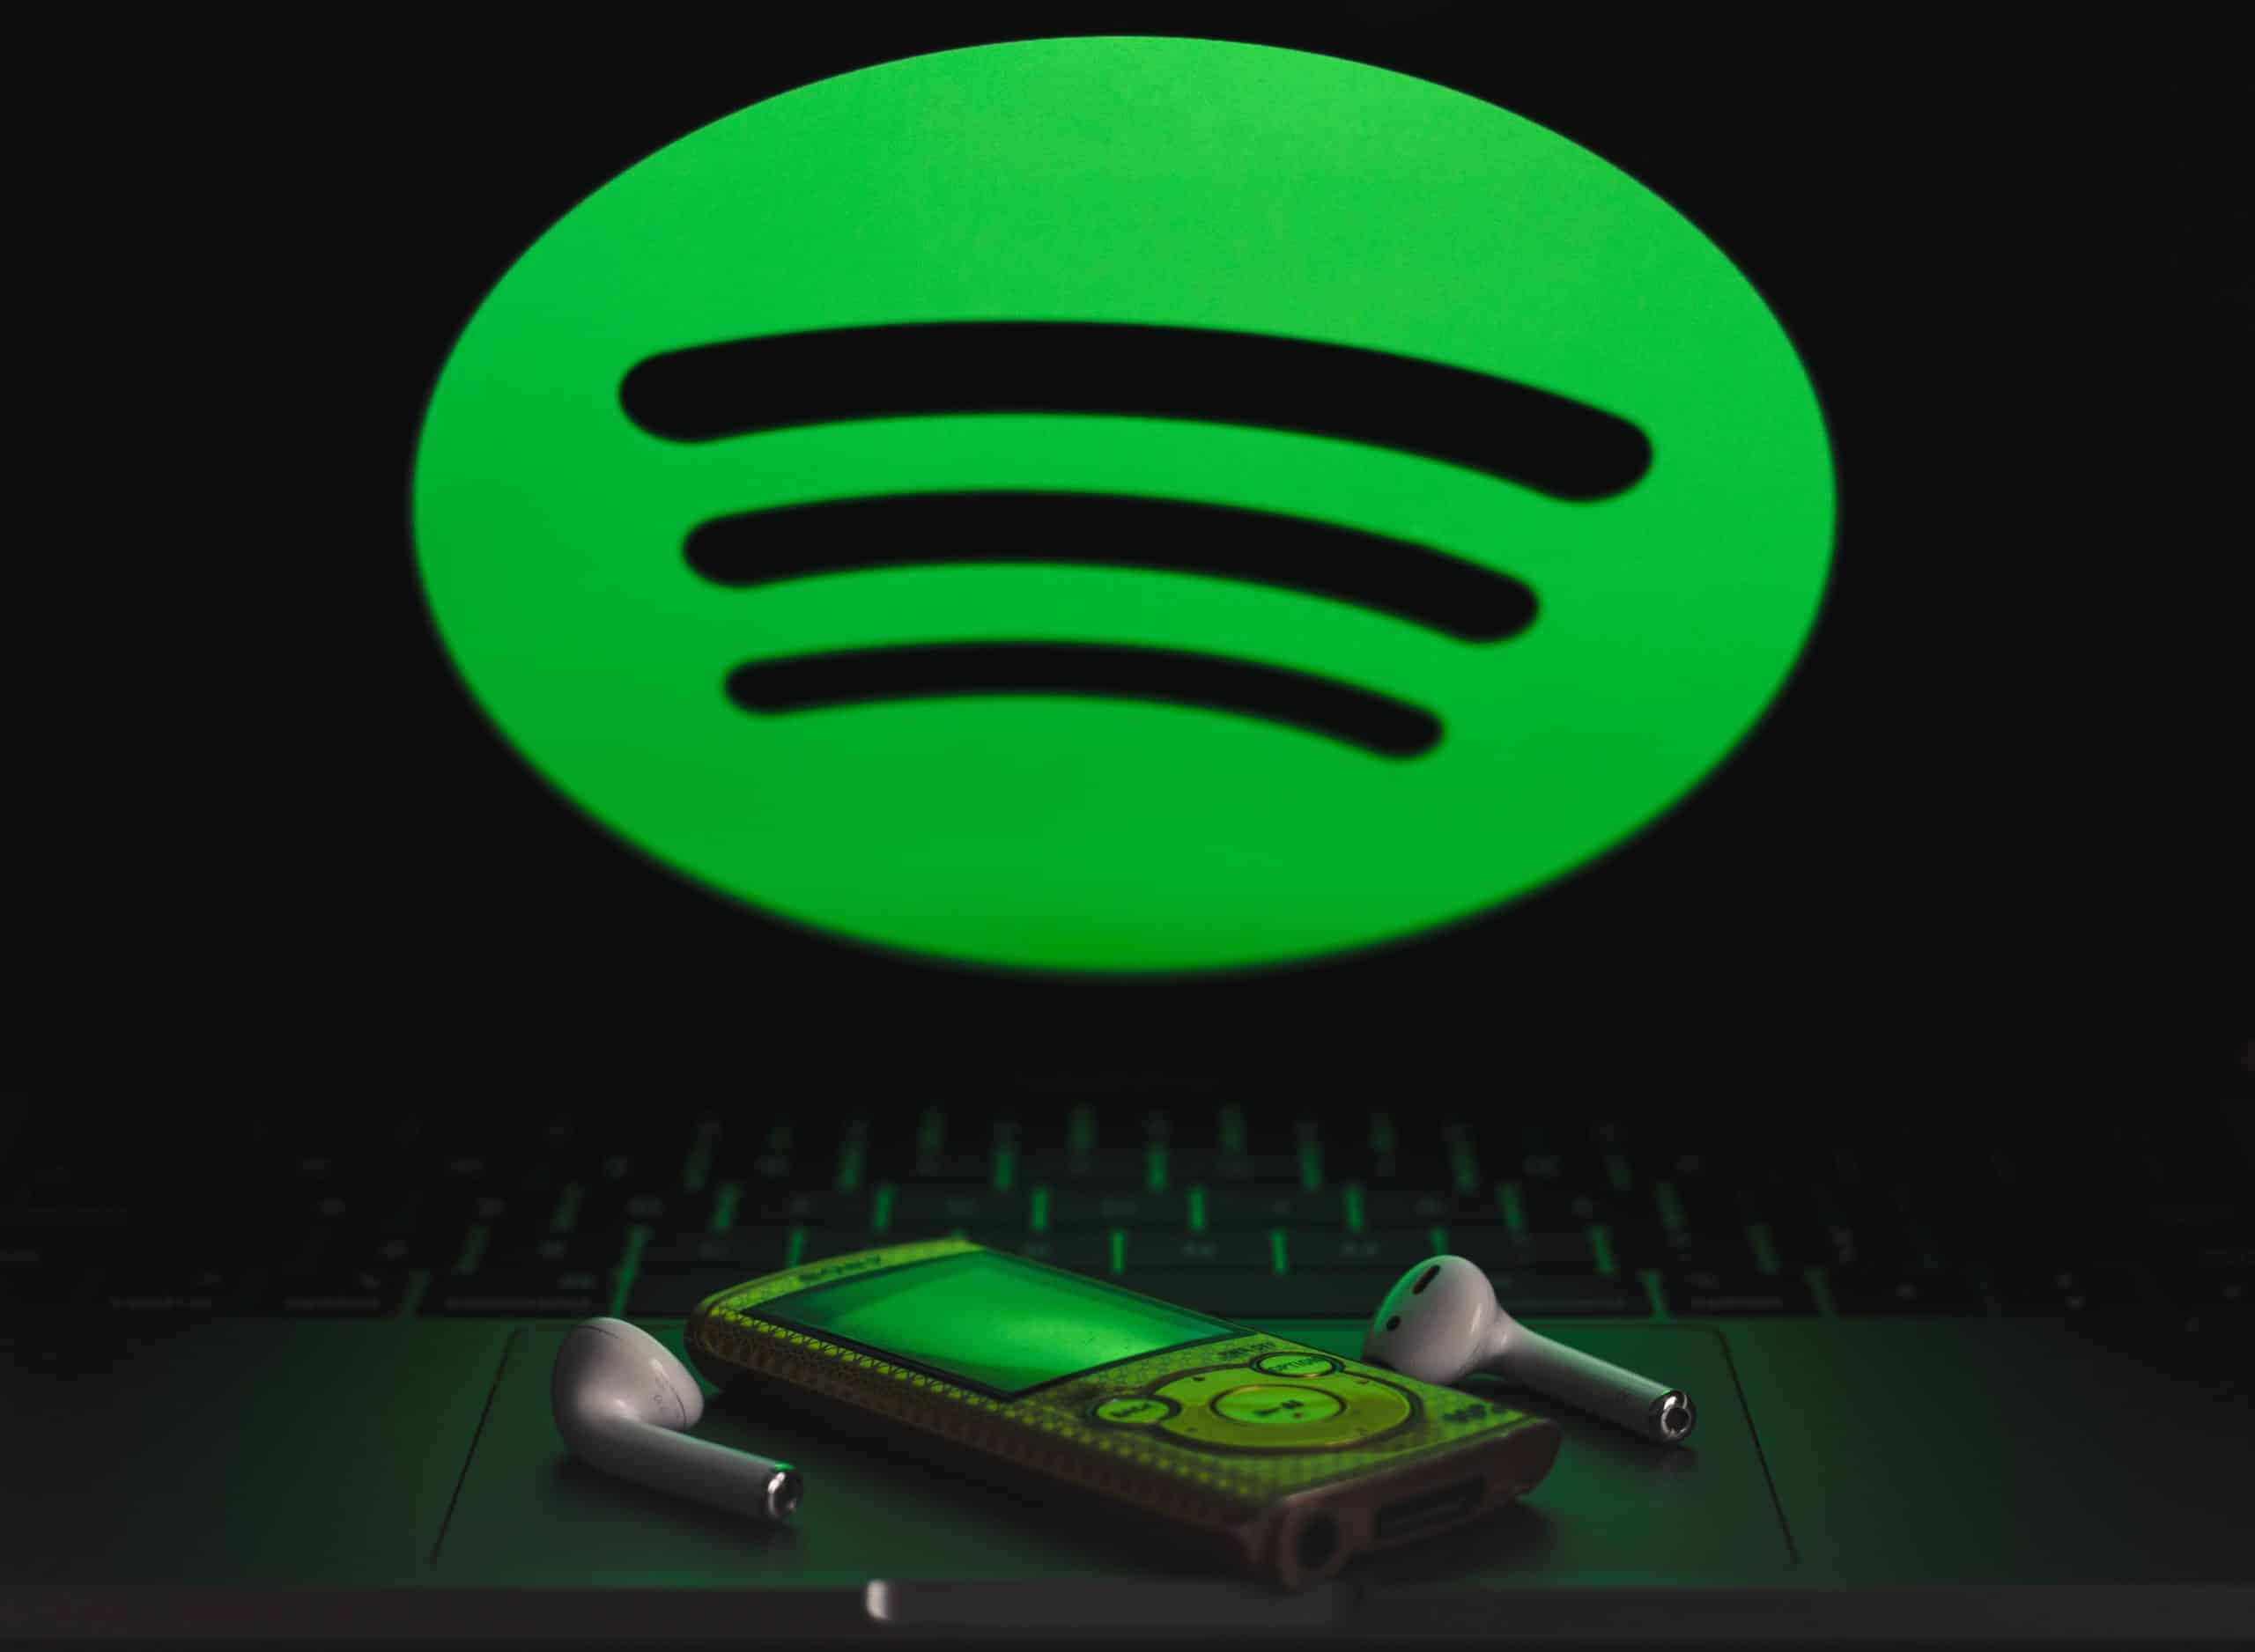 Spotify get more followers